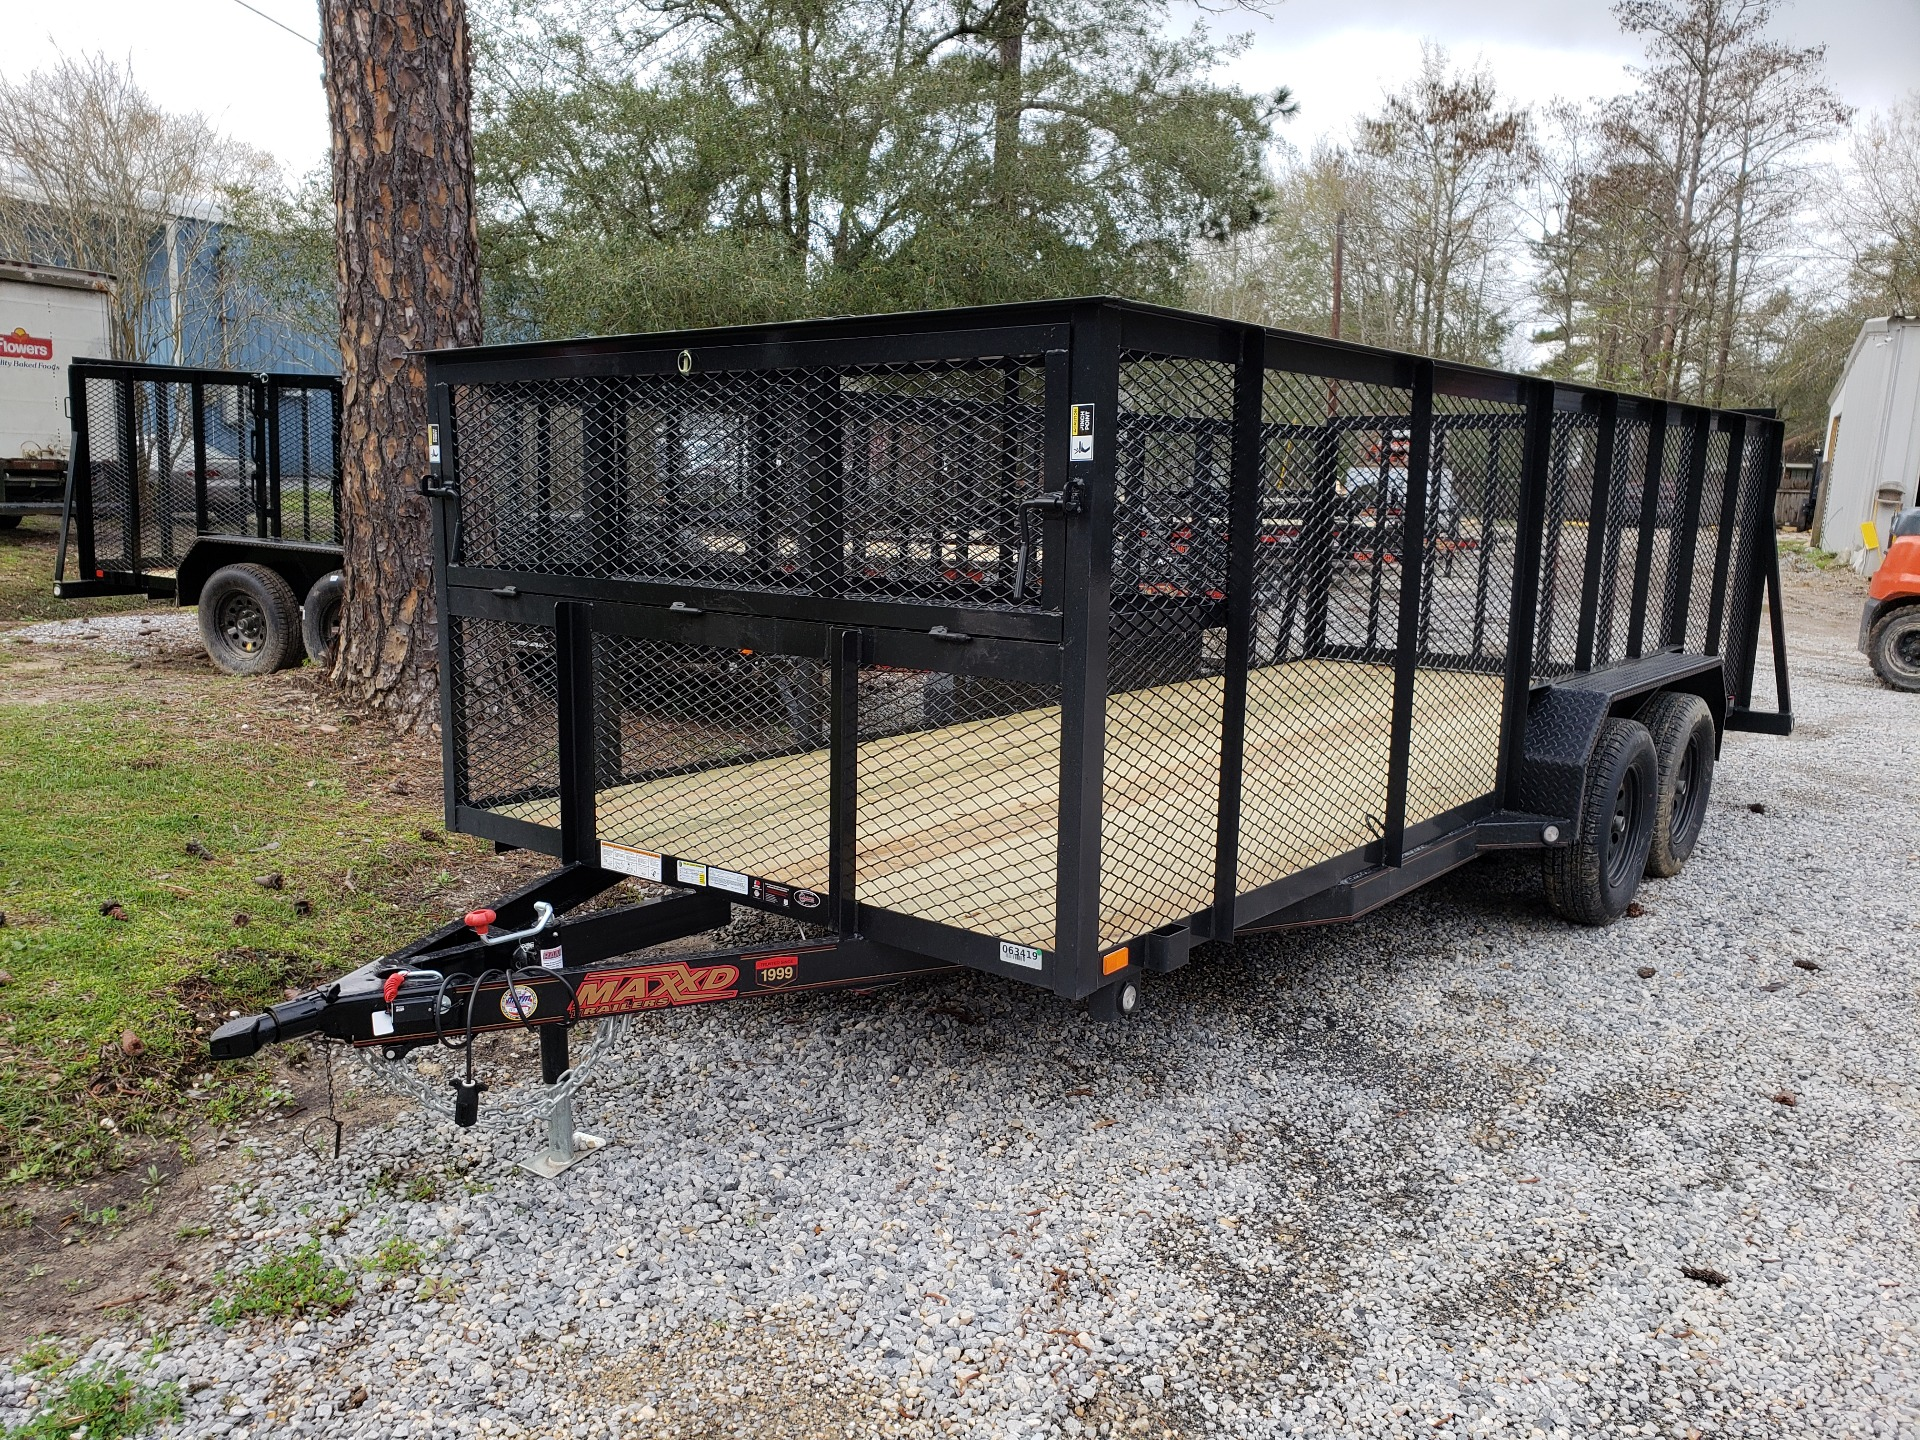 2019 MaxxD Trailers 18X83 in Pearl River, Louisiana - Photo 6